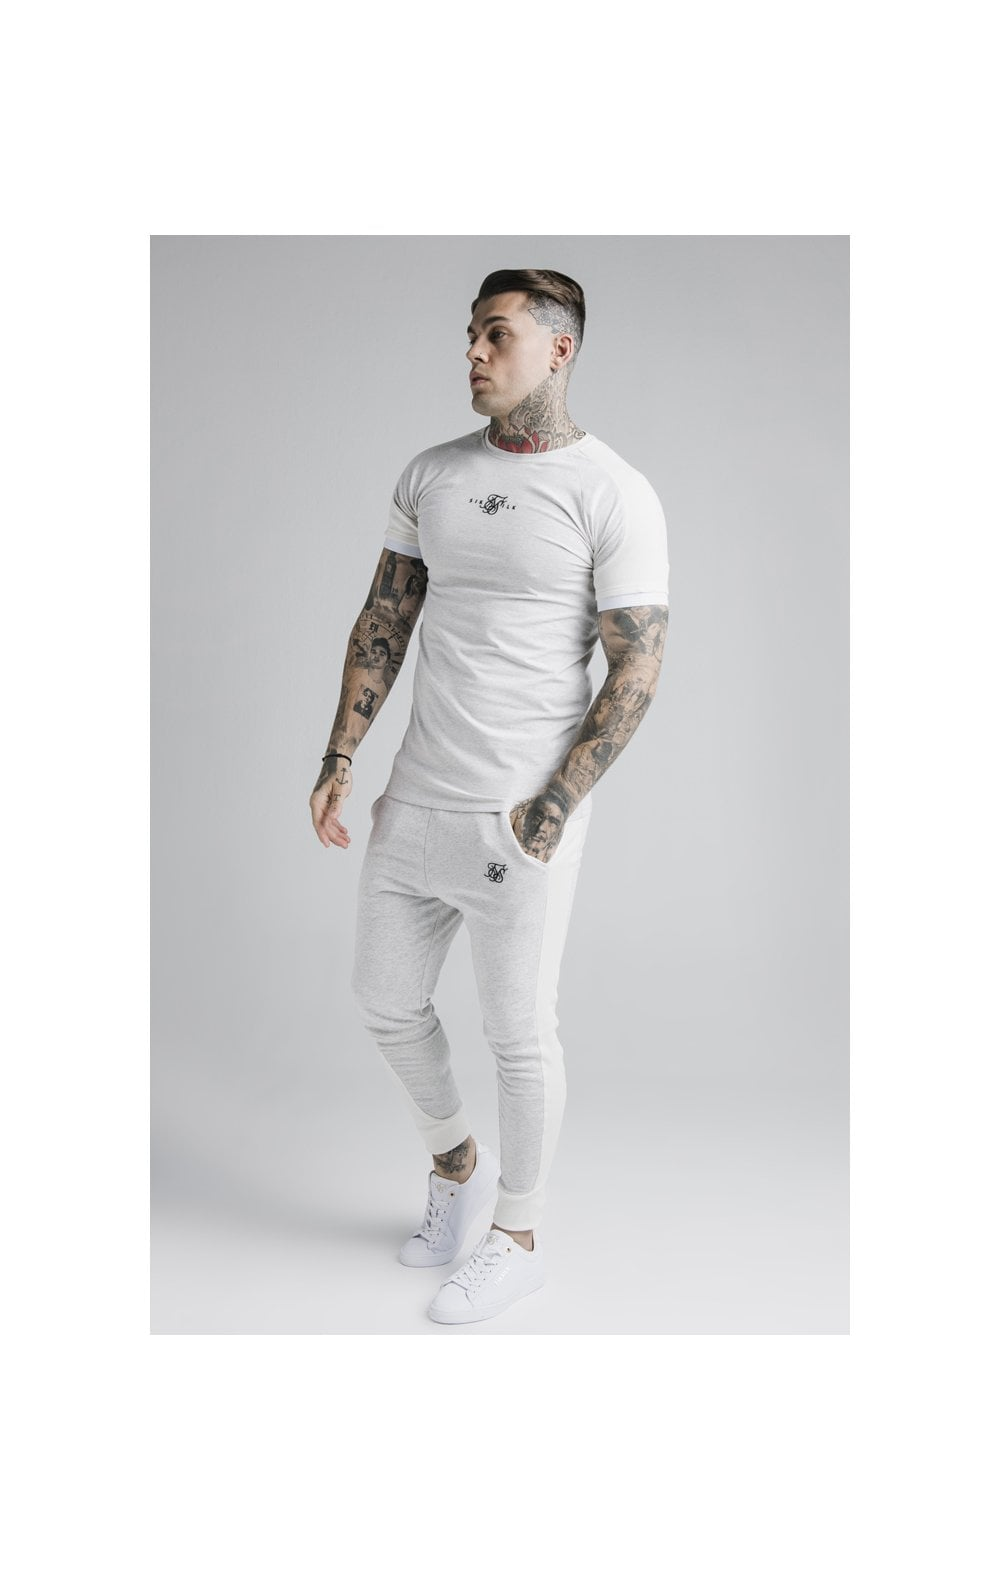 Load image into Gallery viewer, SikSilk Unite Rib Raglan Gym Tee - White (5)